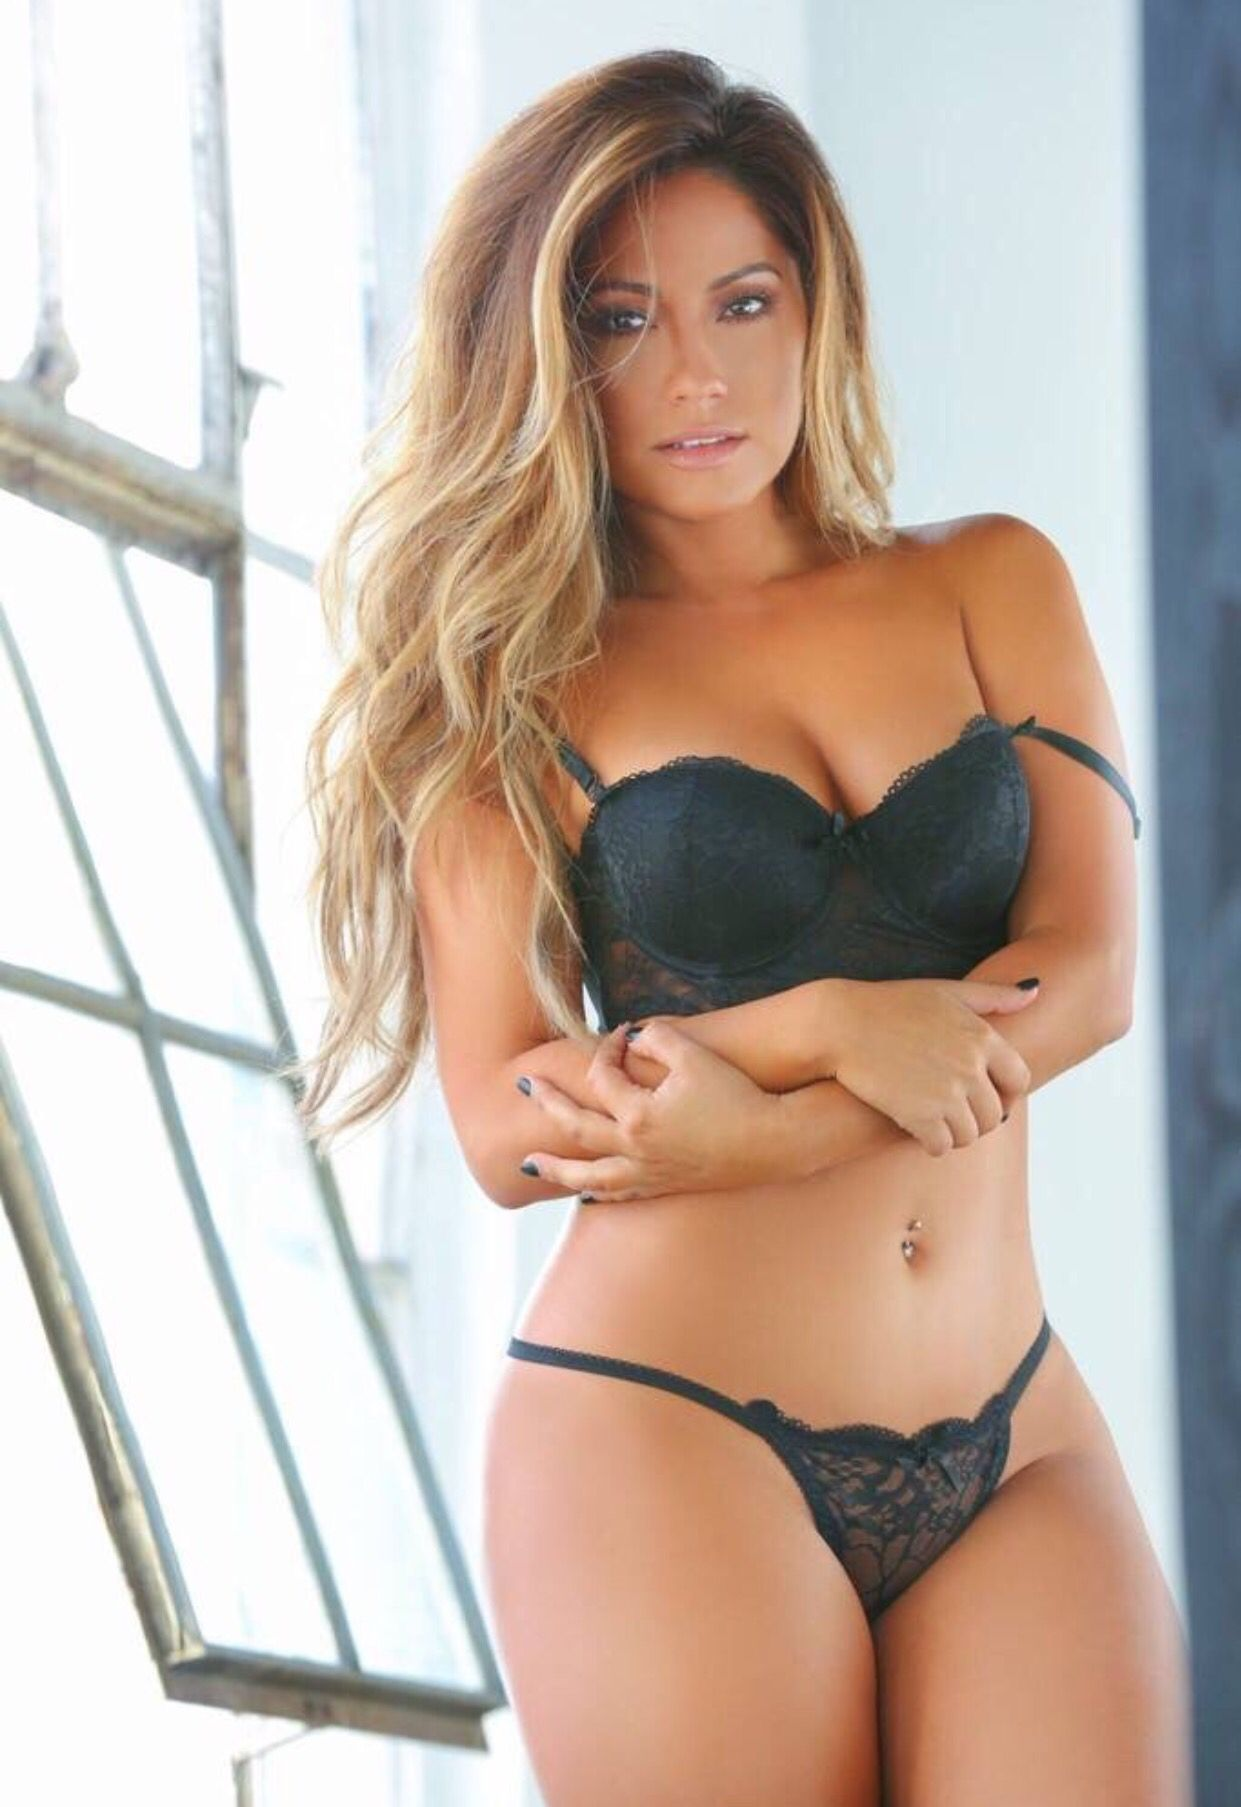 c03c5b6b504 Jessica Burciaga in black lingerie. The girl can do NO wrong ...